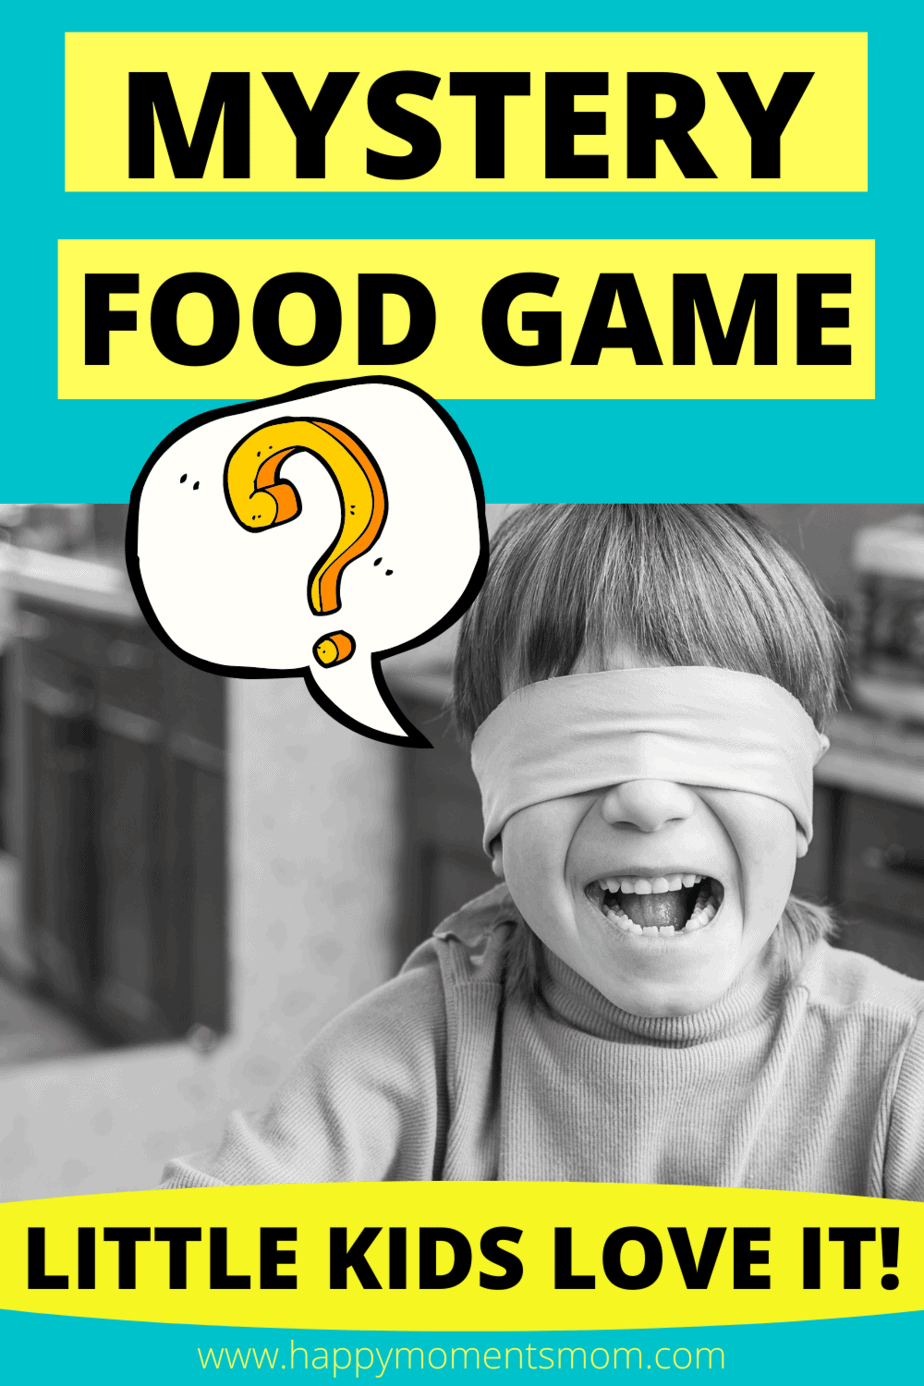 blindfolded child eating to play the mystery food game